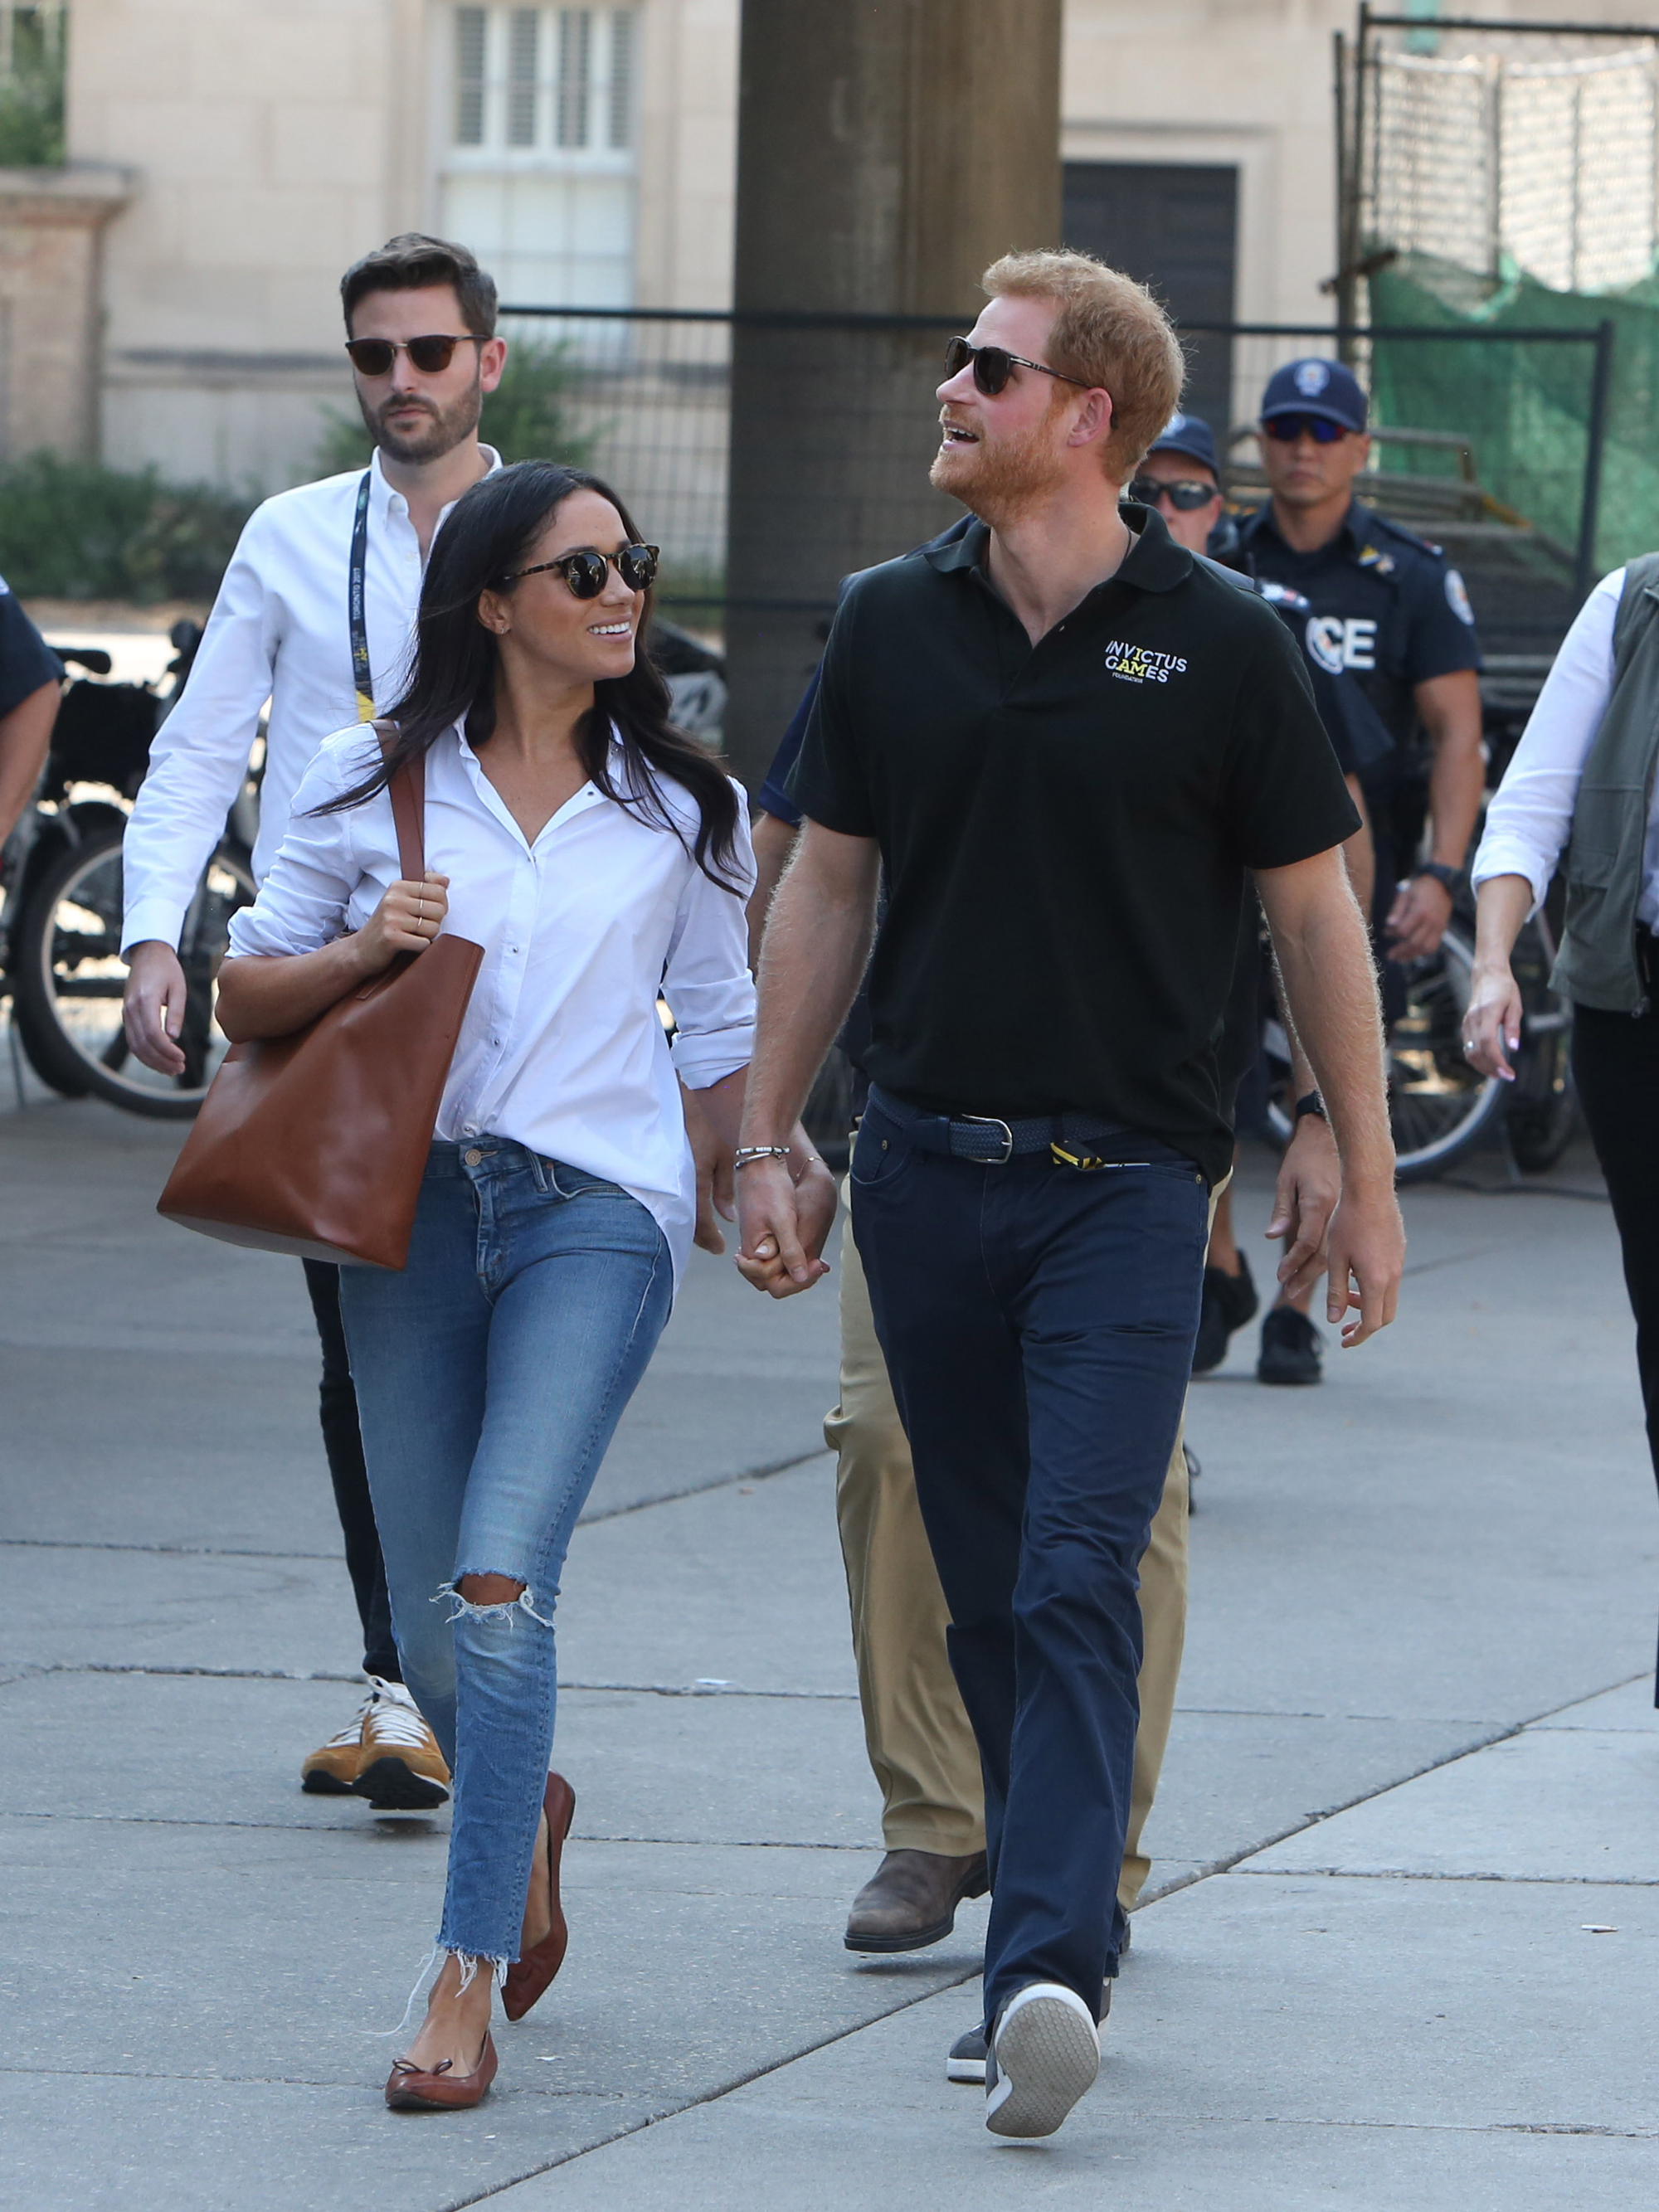 Meghan Markle and Prince Harry Hold Hands in Public, Look Completely Smitten